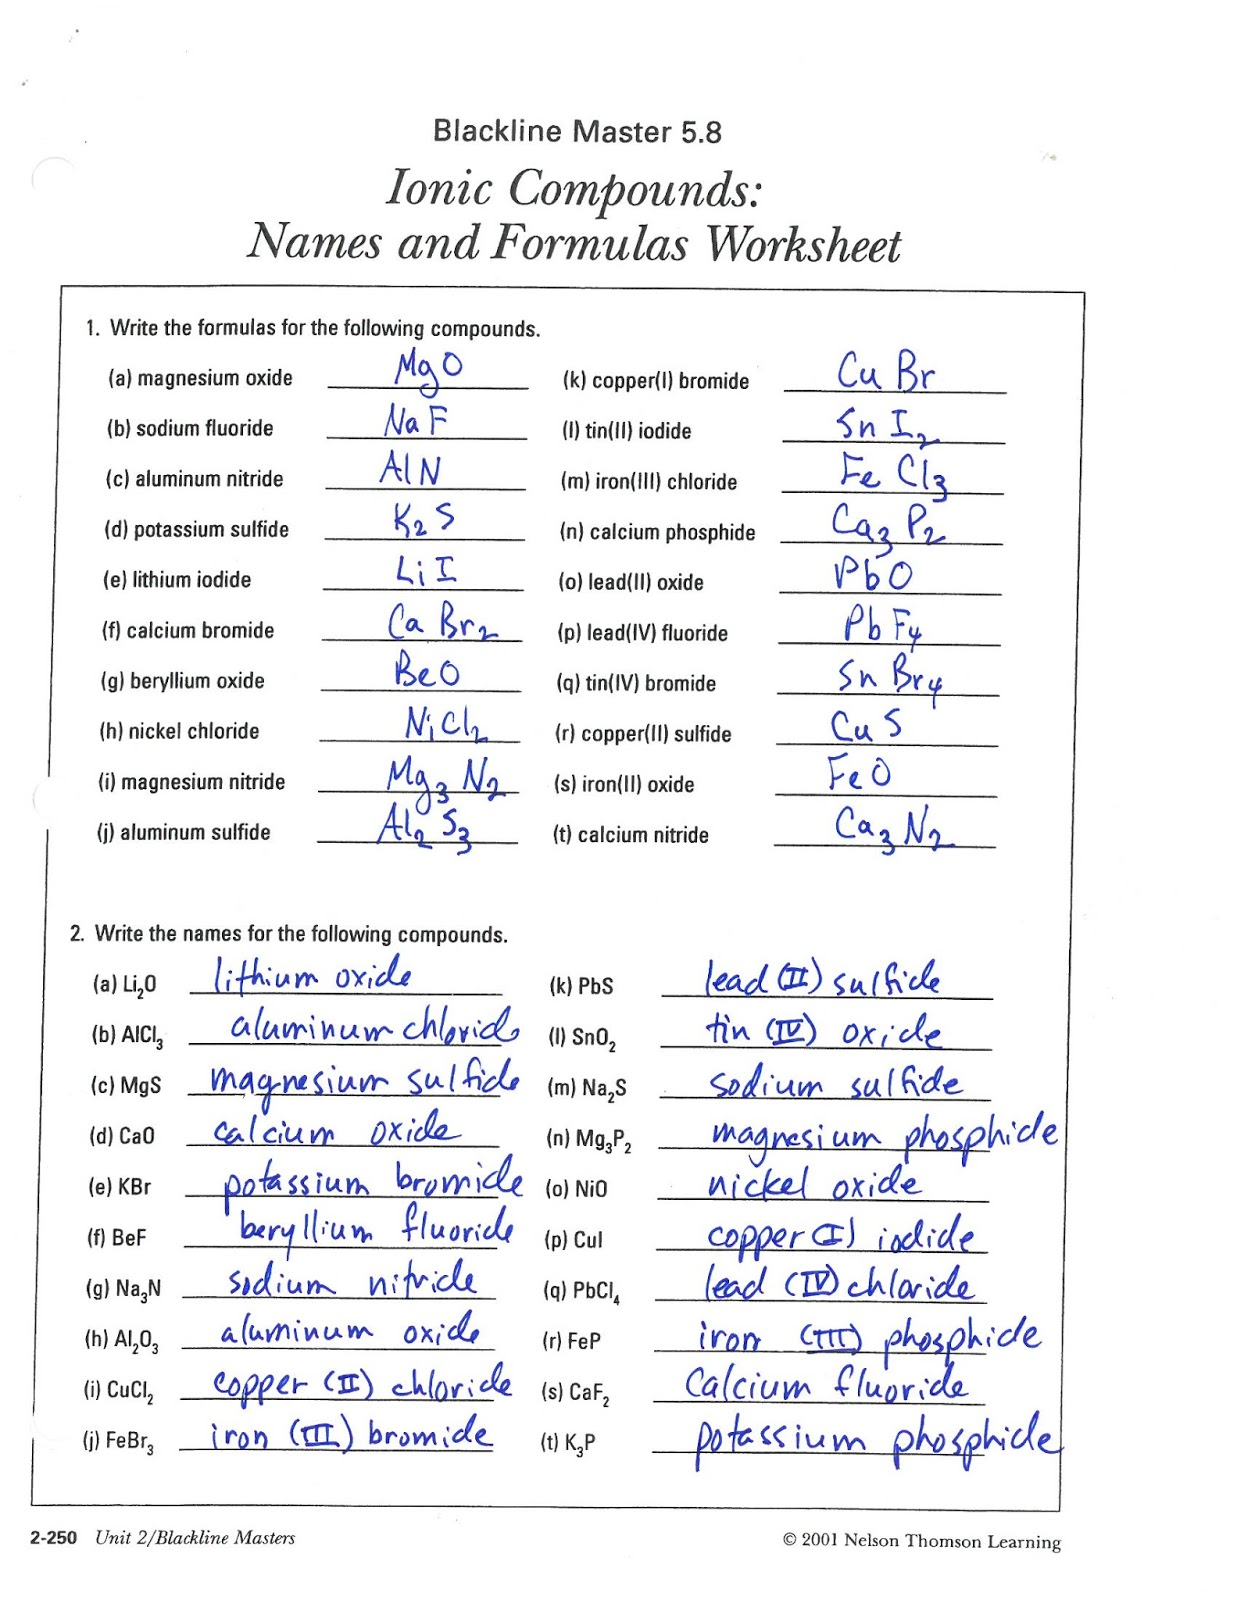 What Are Ionic Compounds? - Definition, Examples & Reactions